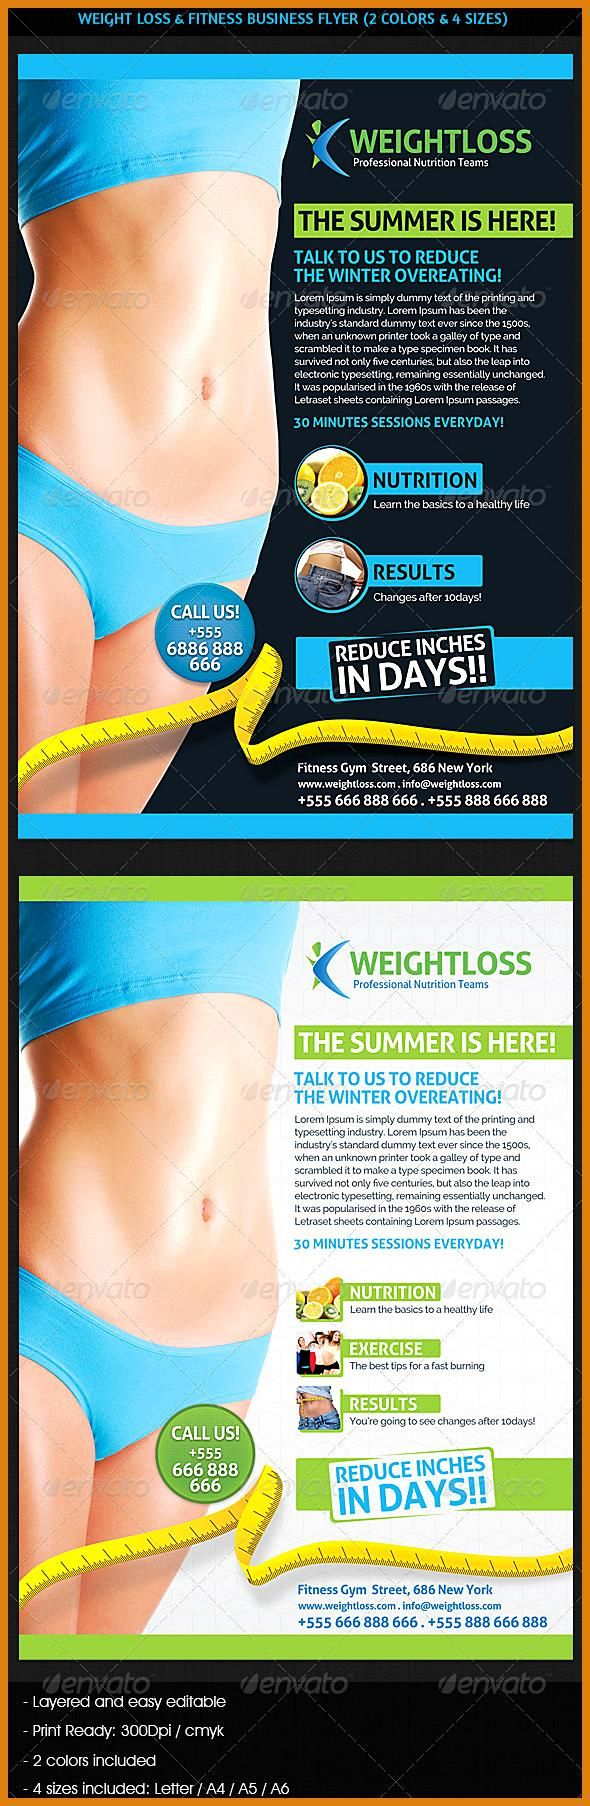 Weight Loss 038 Fitness Business Flyer GraphicRiver A professional weight loss and Fitness Gym or Sp...